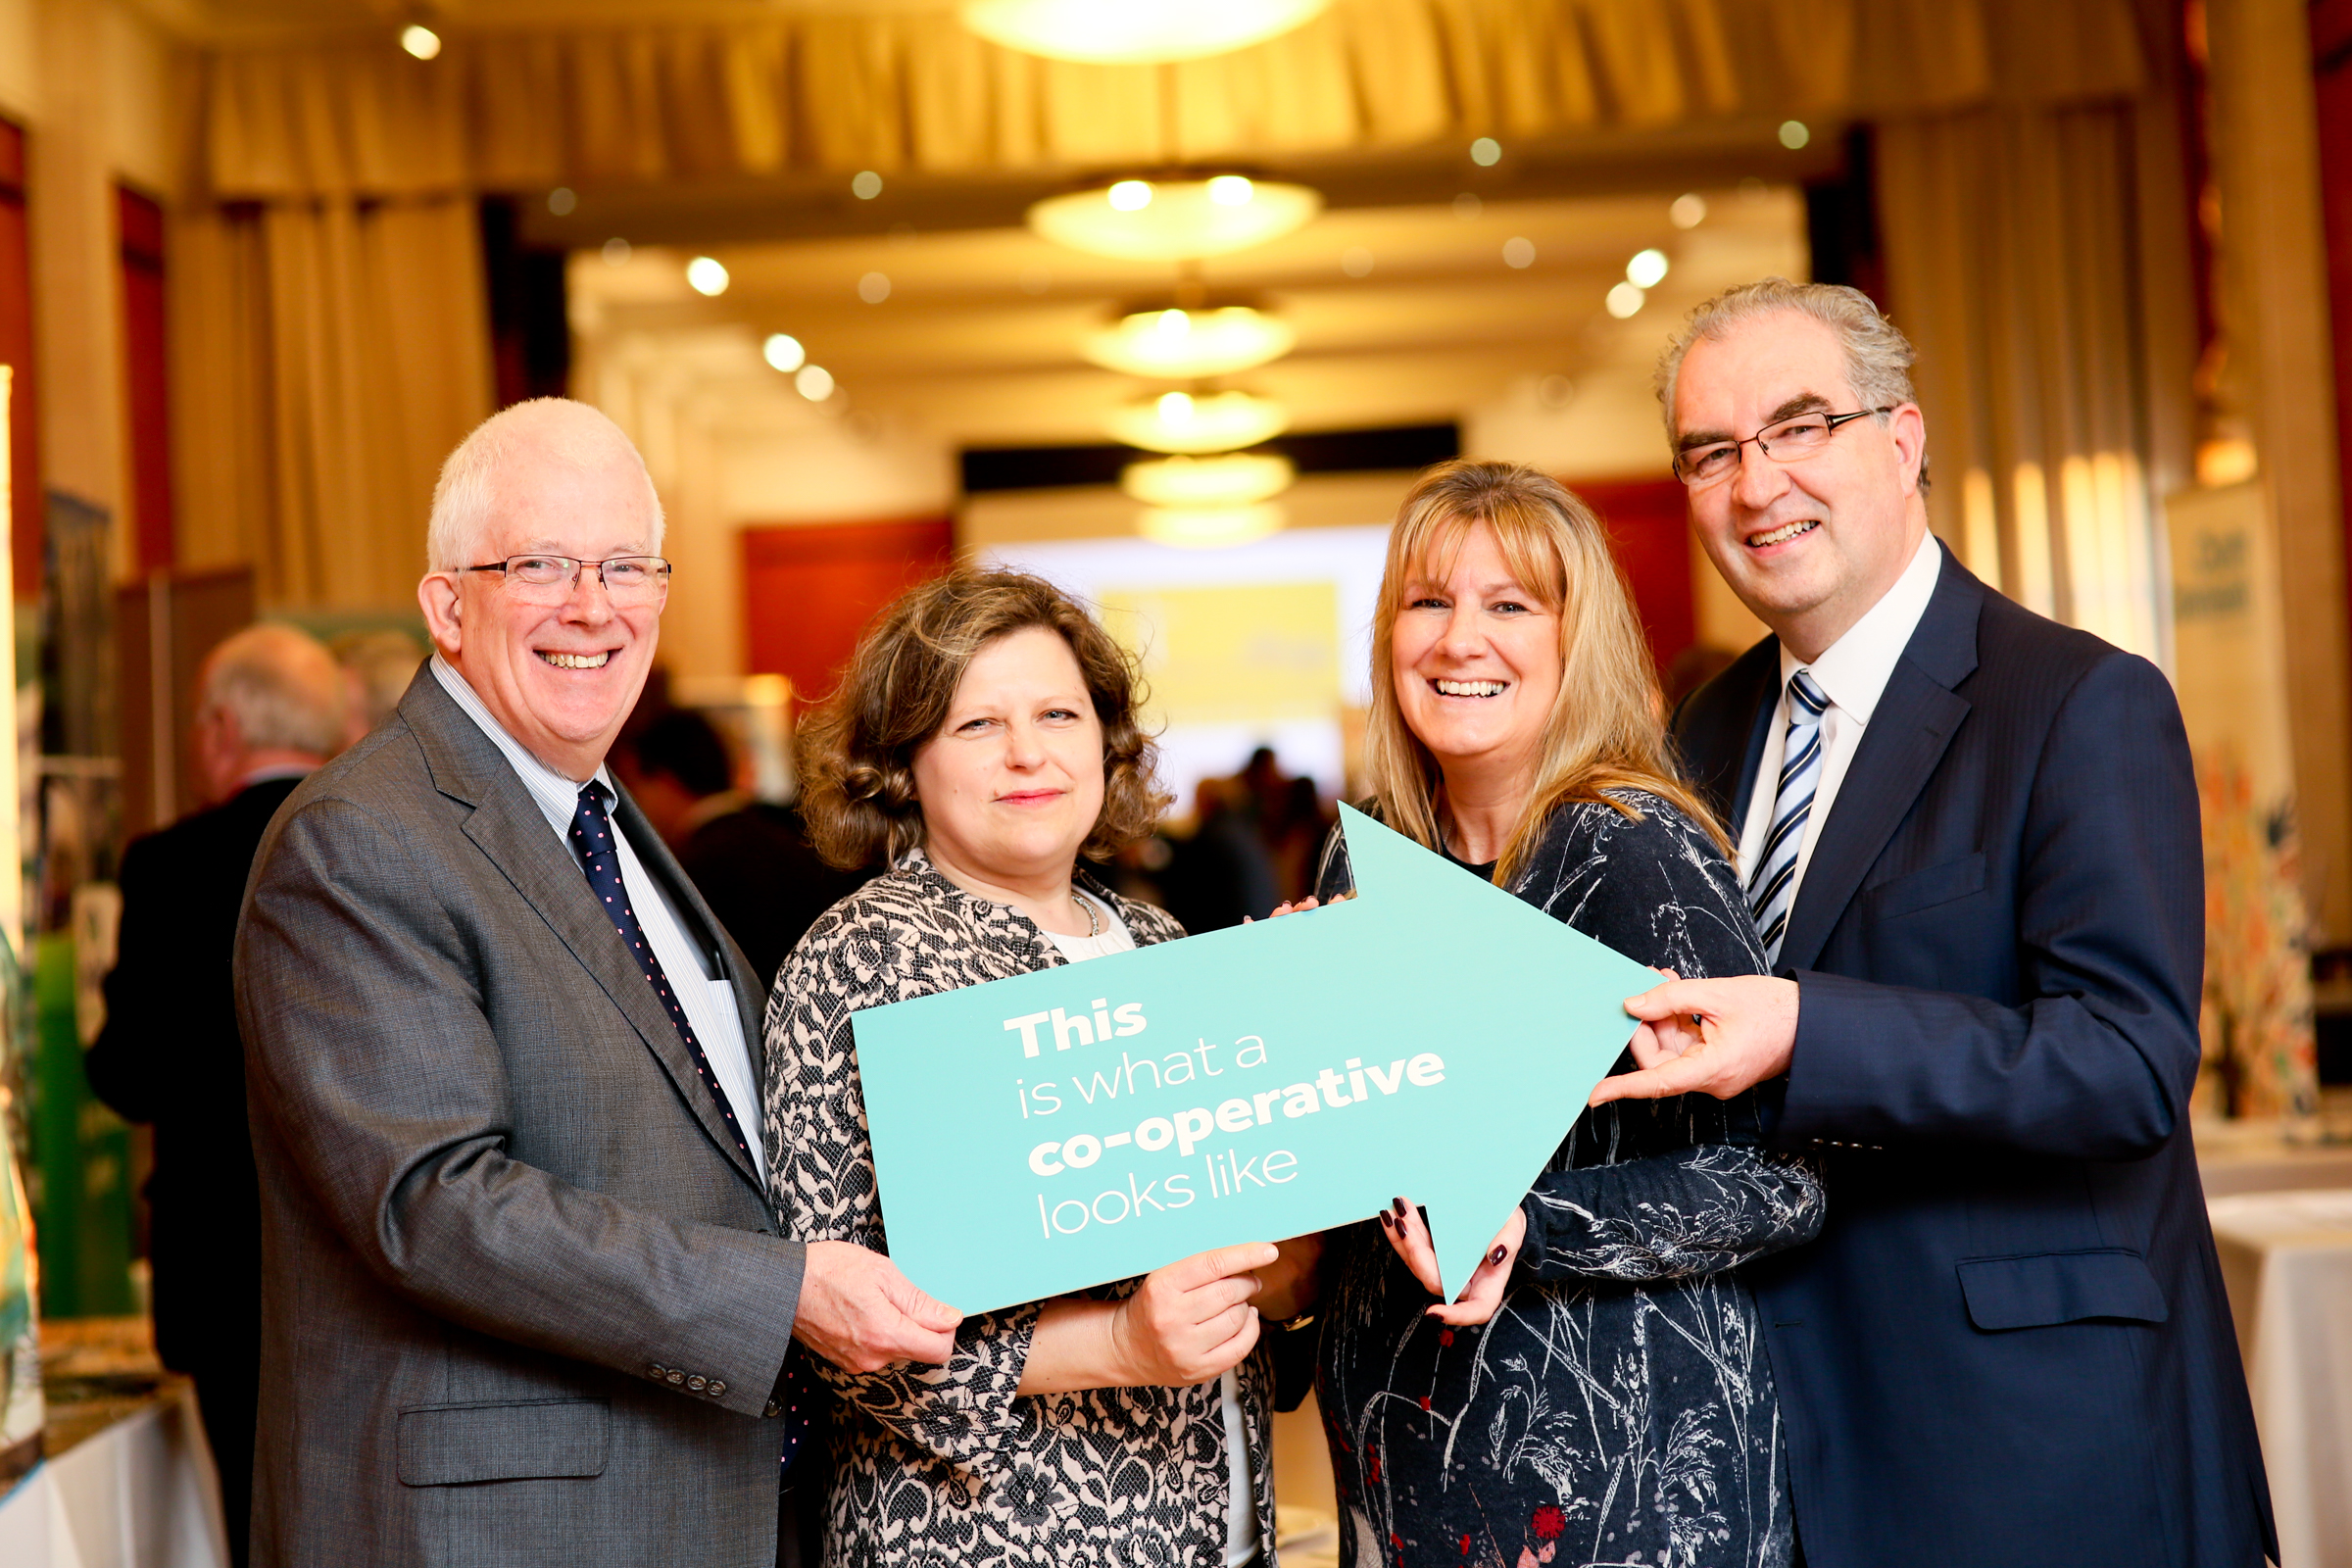 Call for Stormont to support co-operative model